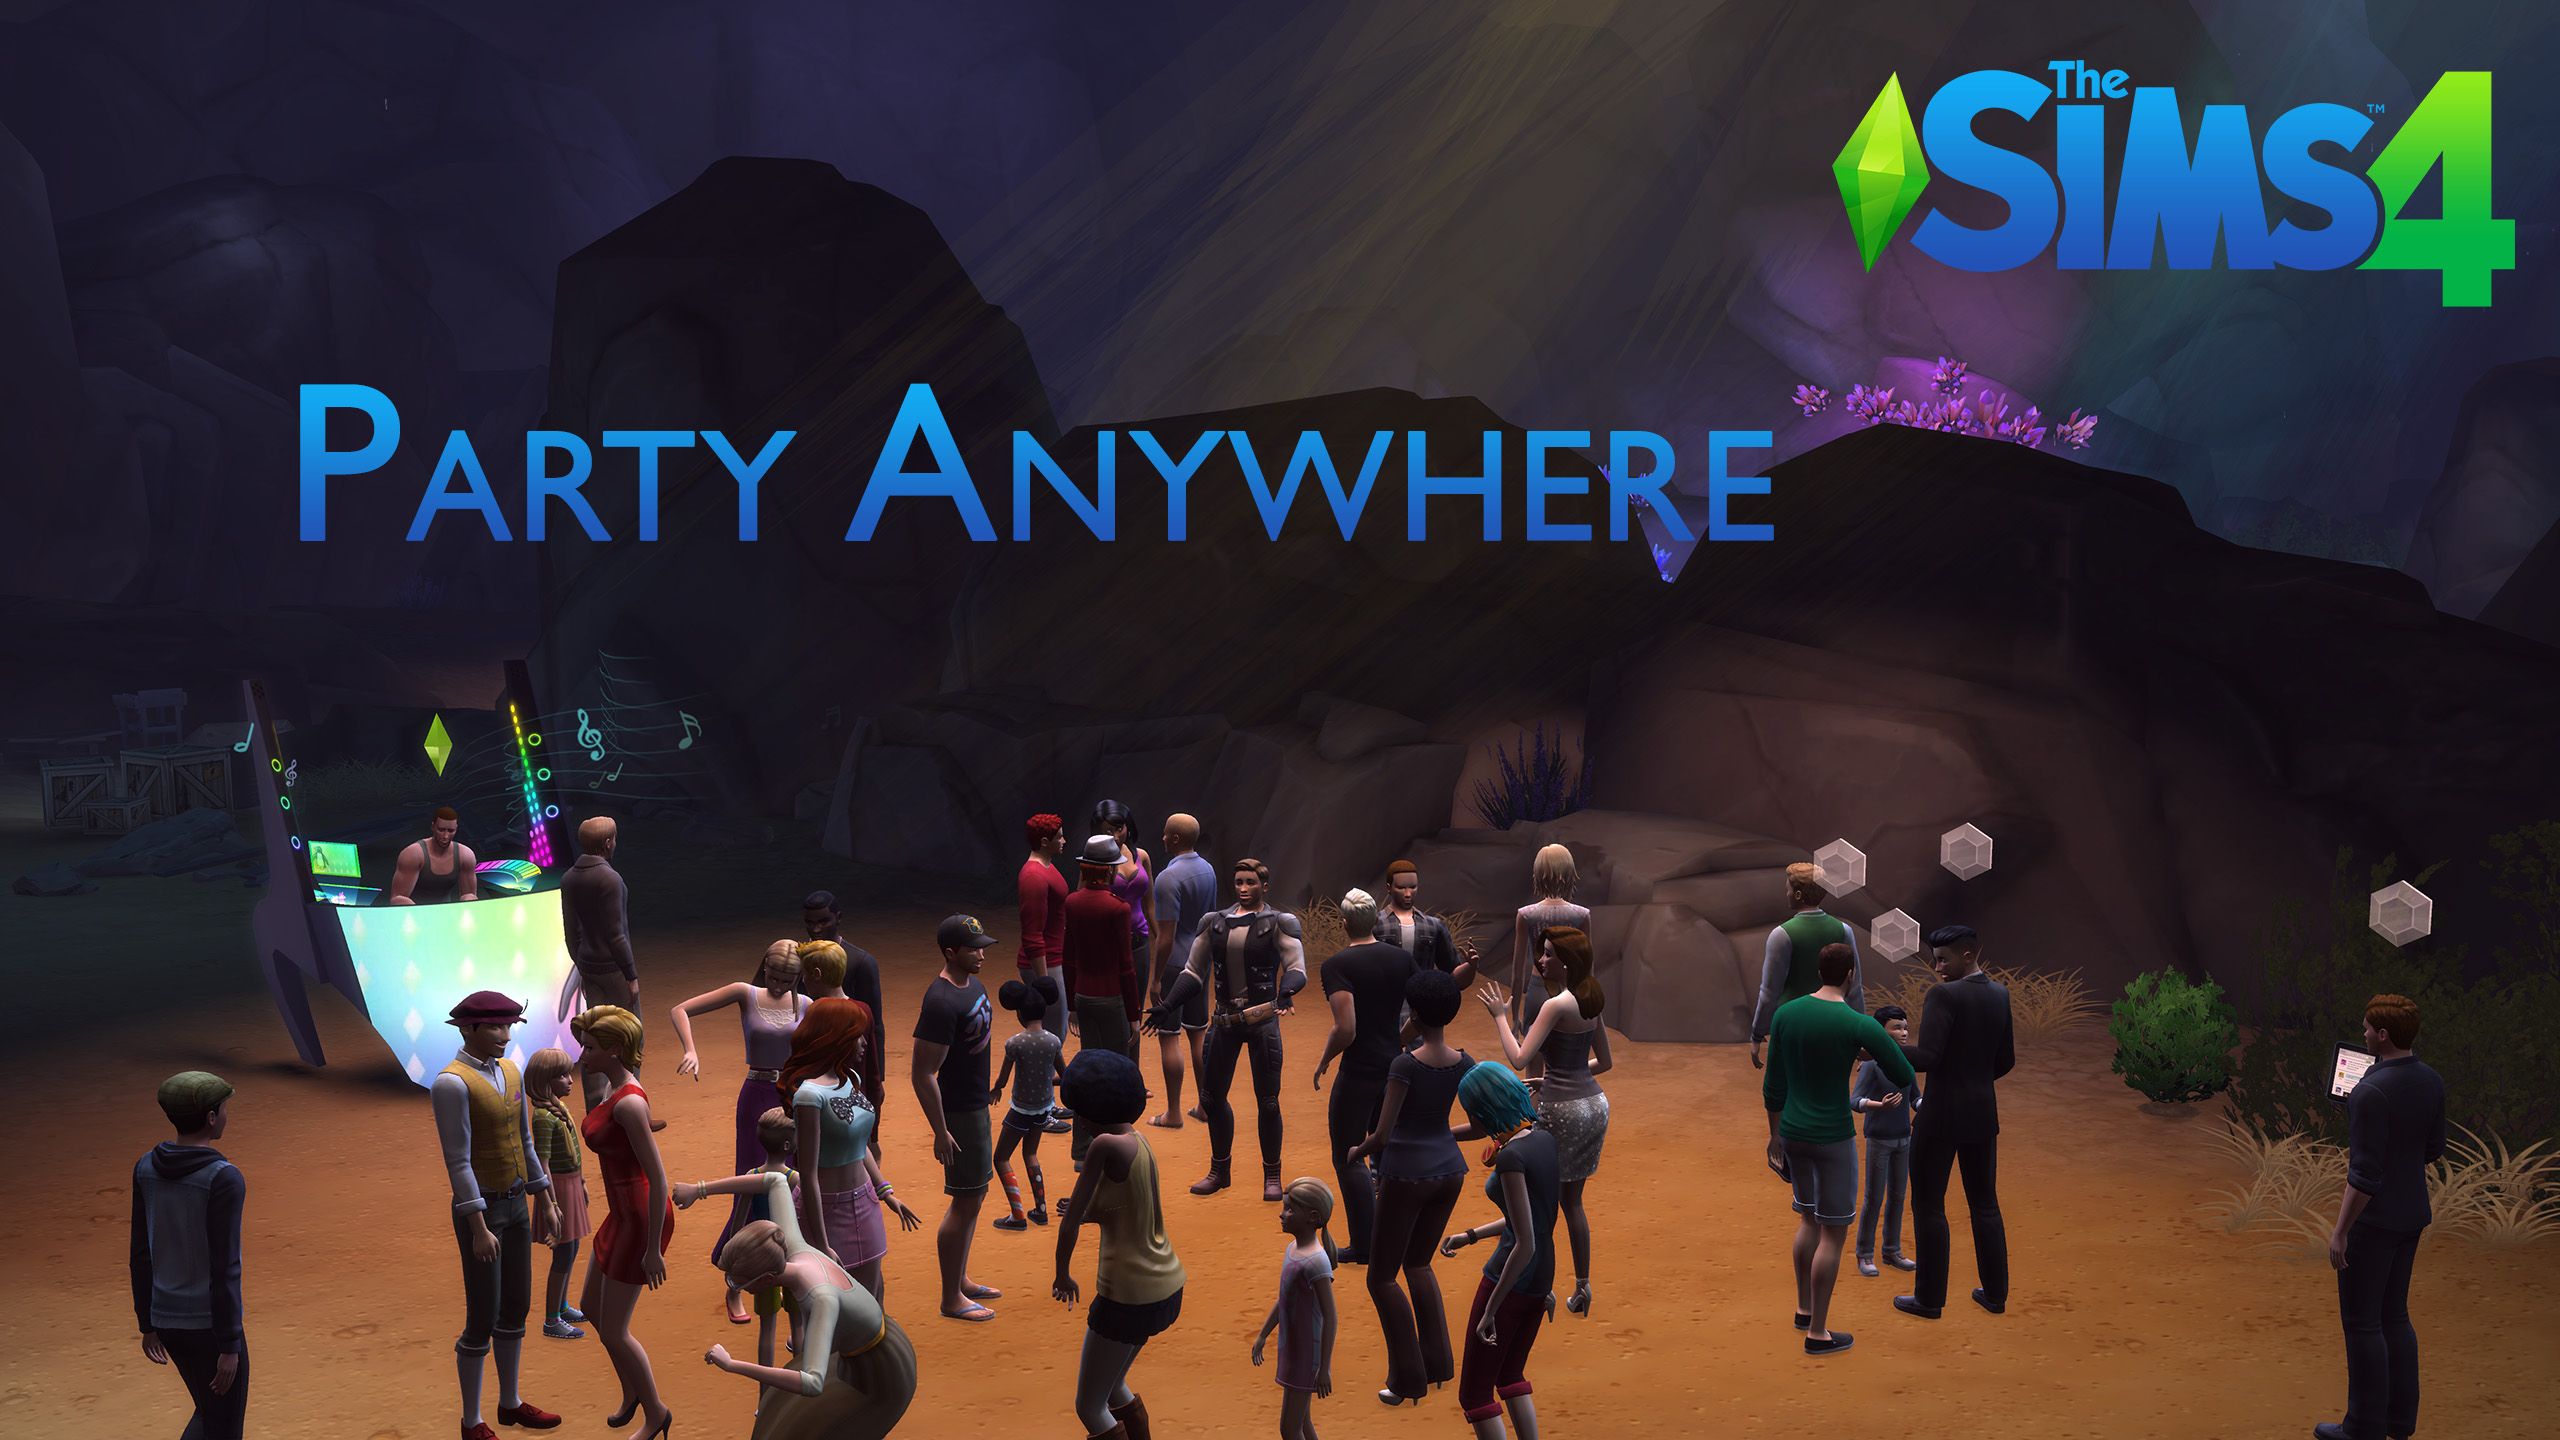 Mod The Sims - Party Anywhere